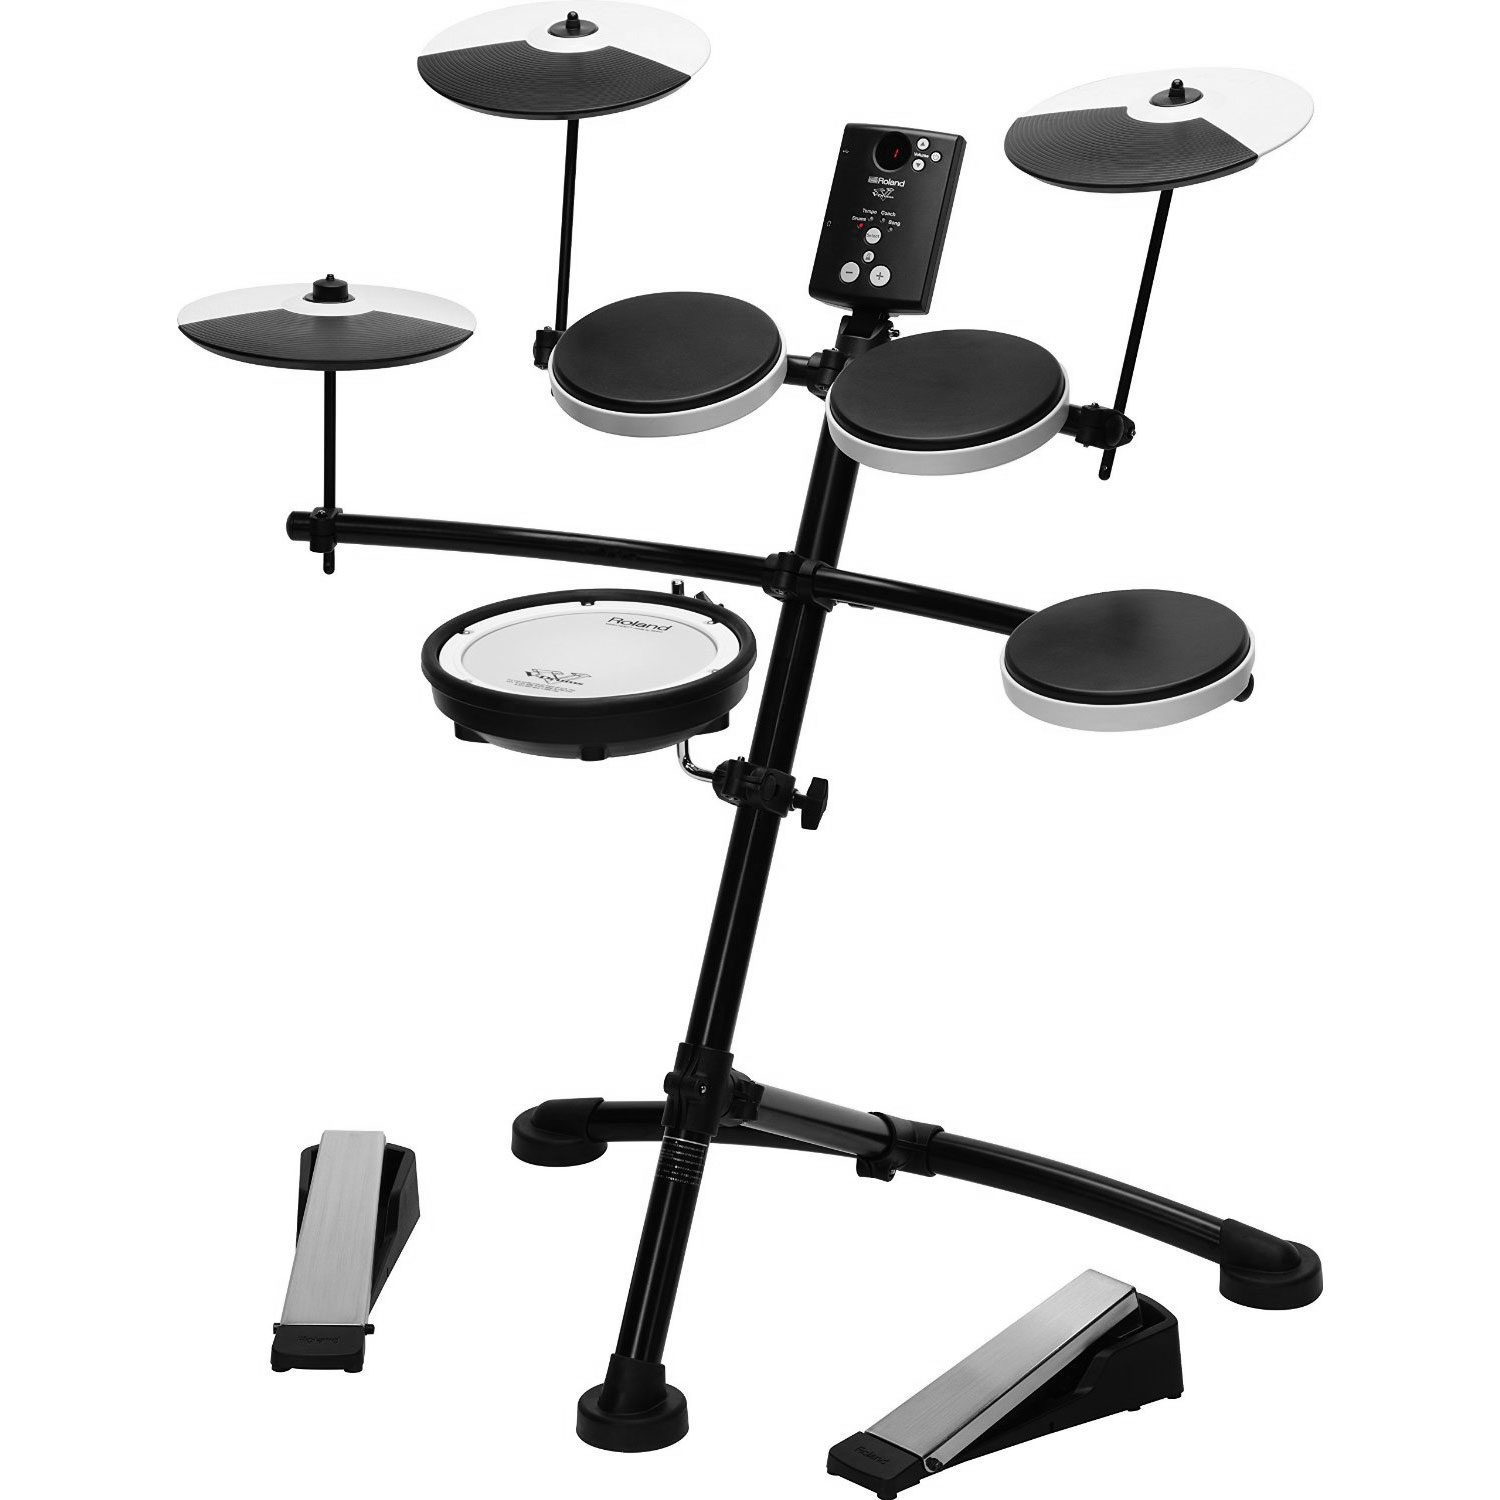 Roland 5-Piece Electronic Drum Set with Mesh Snare Pad